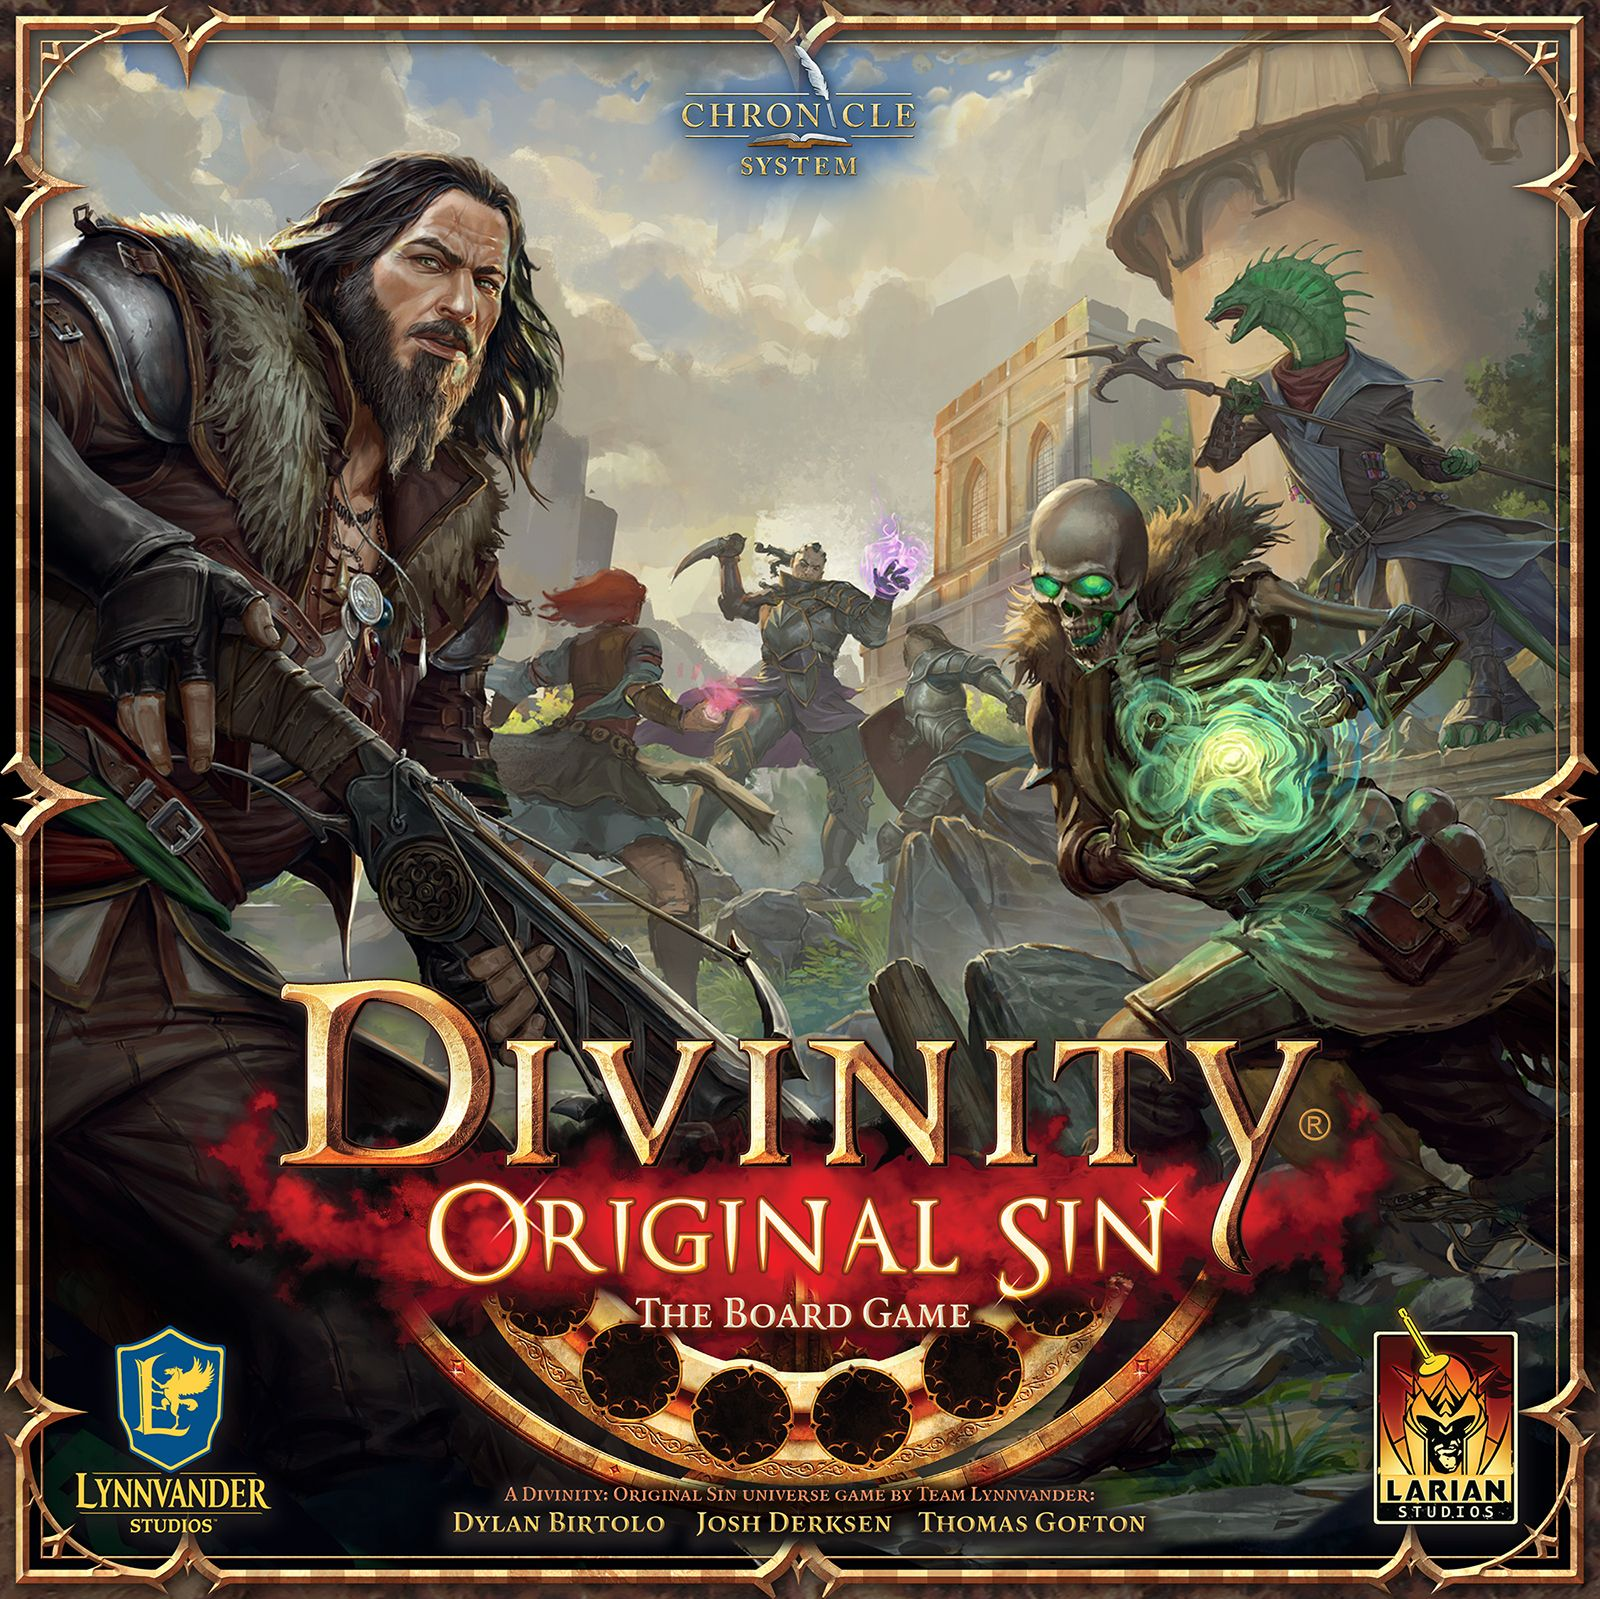 Main image for Divinity Original Sin the Board Game